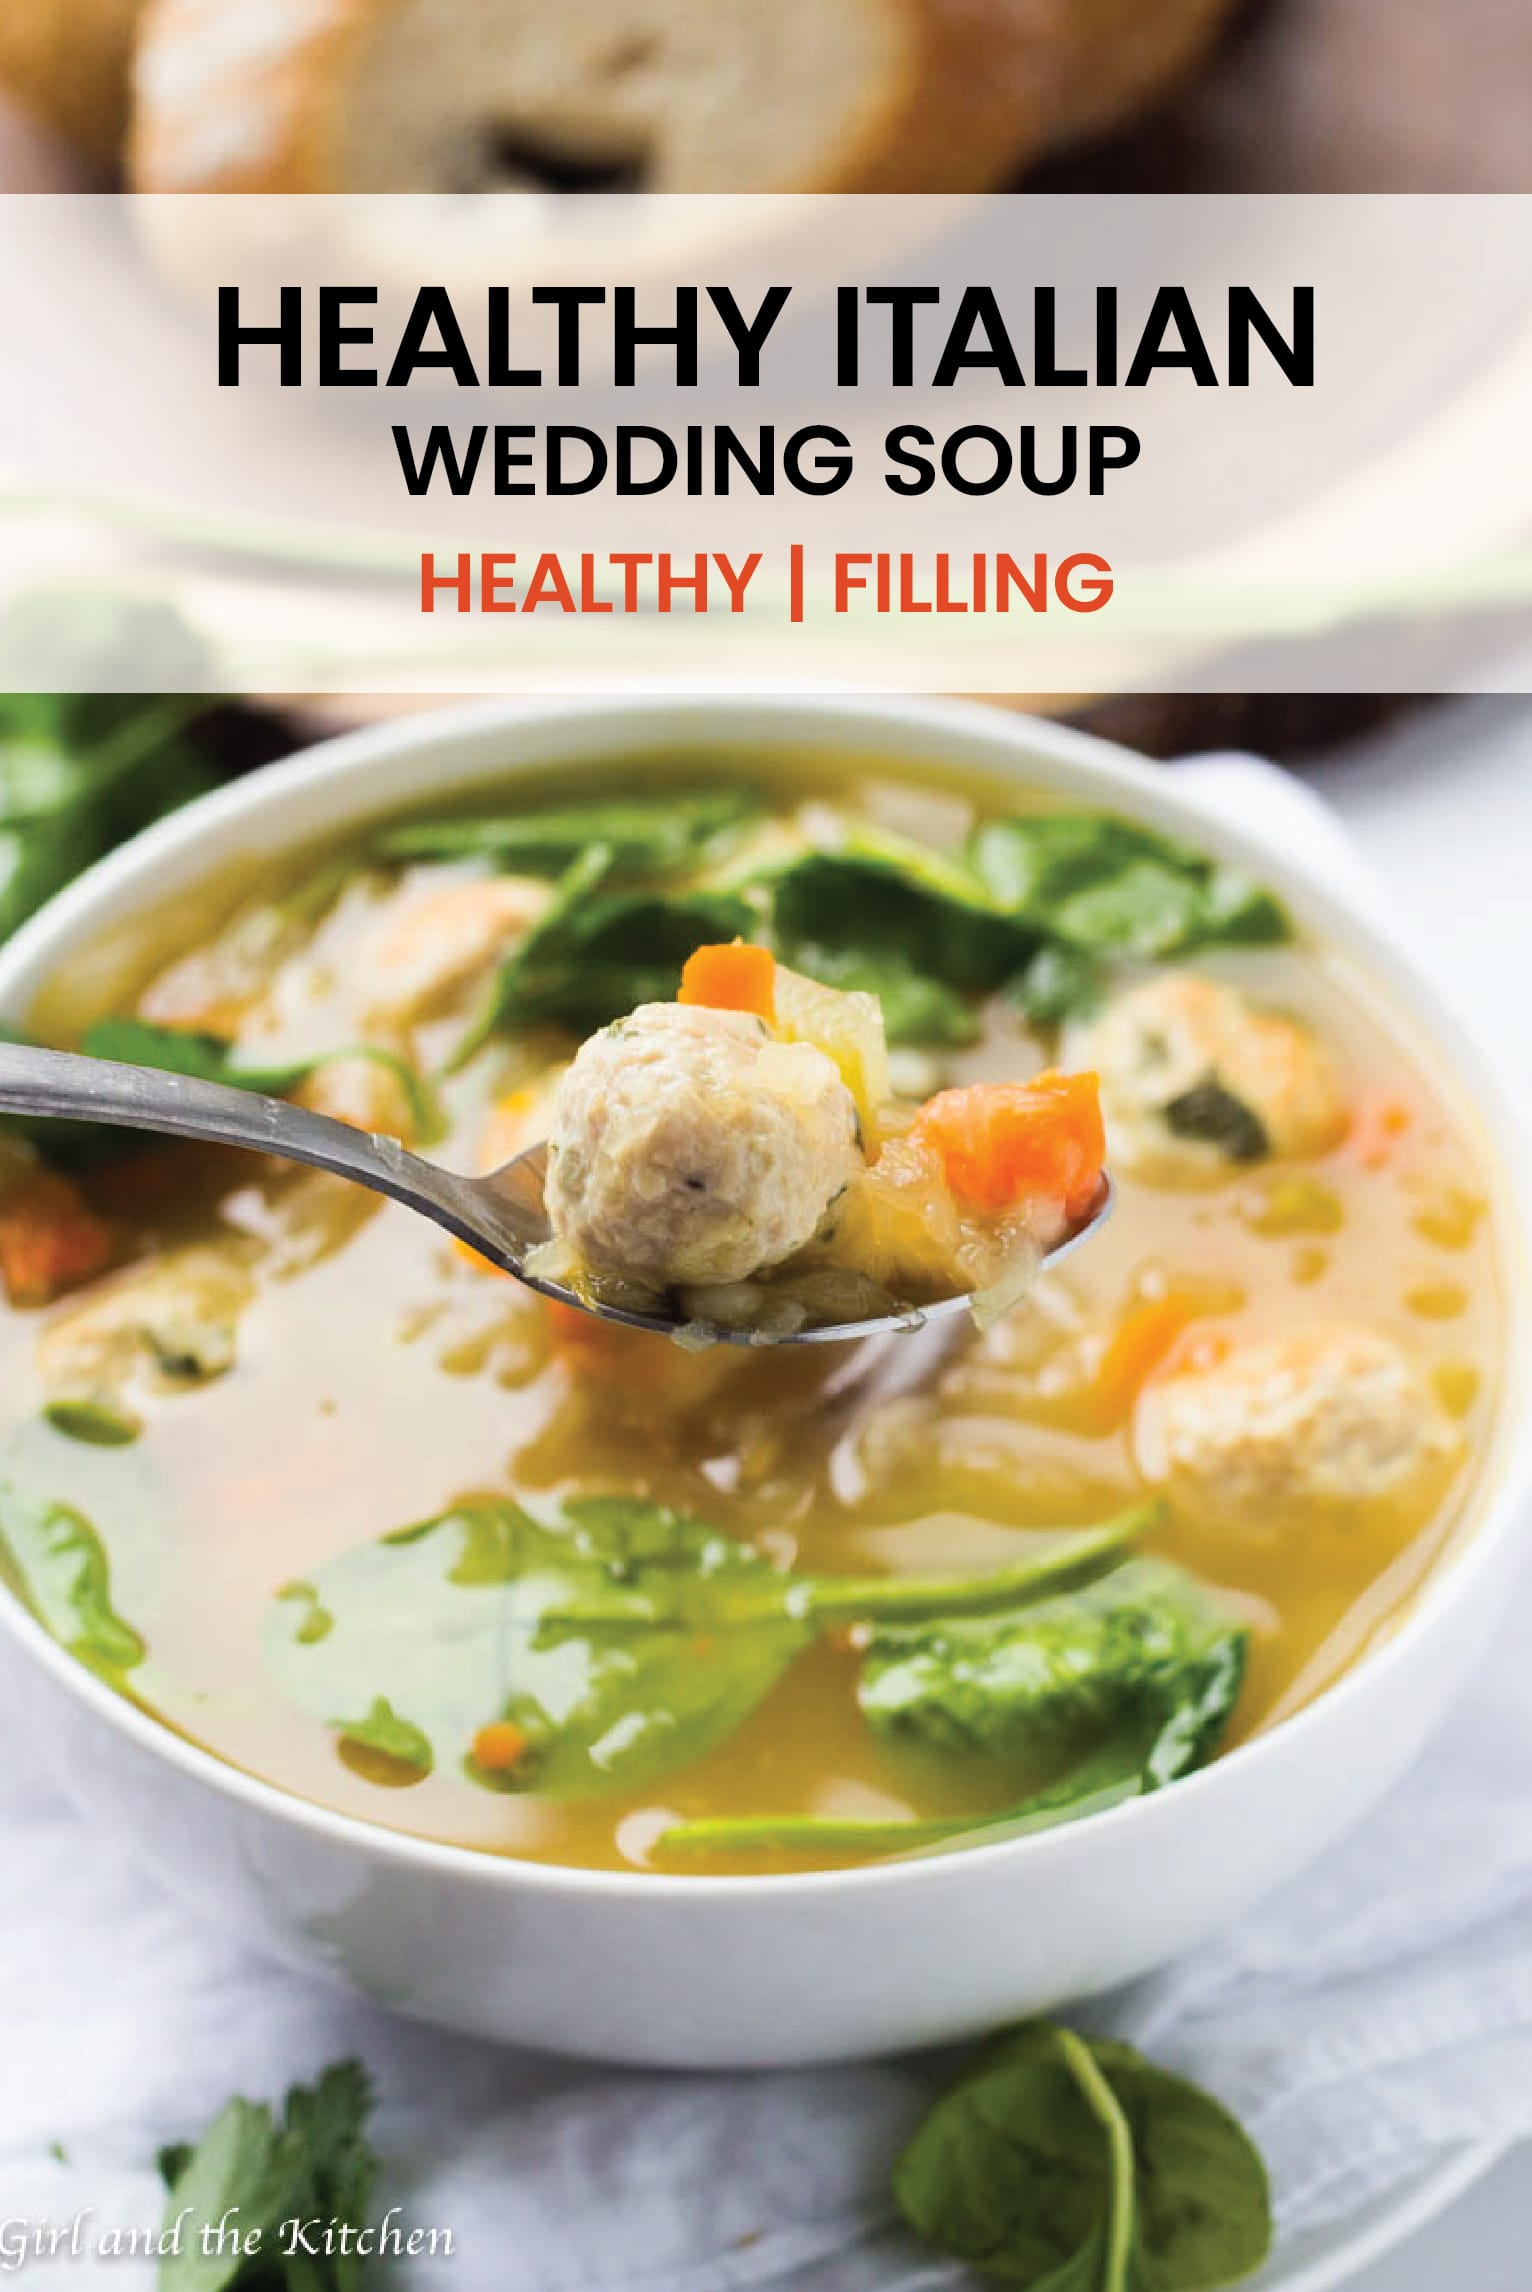 Wedding Soup that is healthy, filling and features a secret ingredient for the best tasting broth possible! #weddingsoup